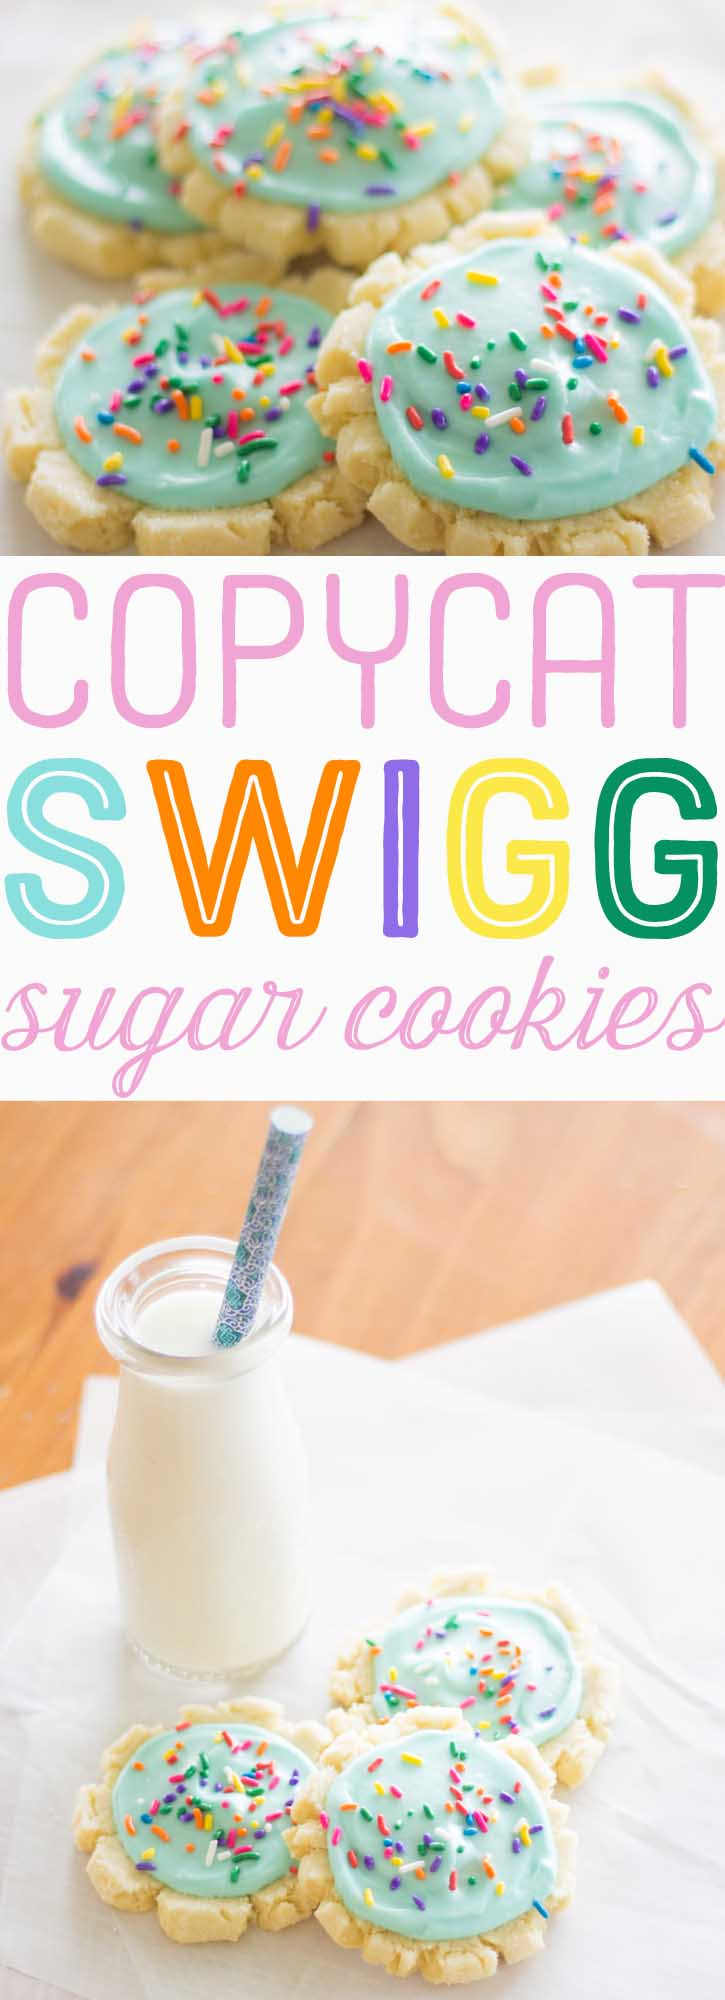 Swigg Sugar Cookies-Copycat Recipe